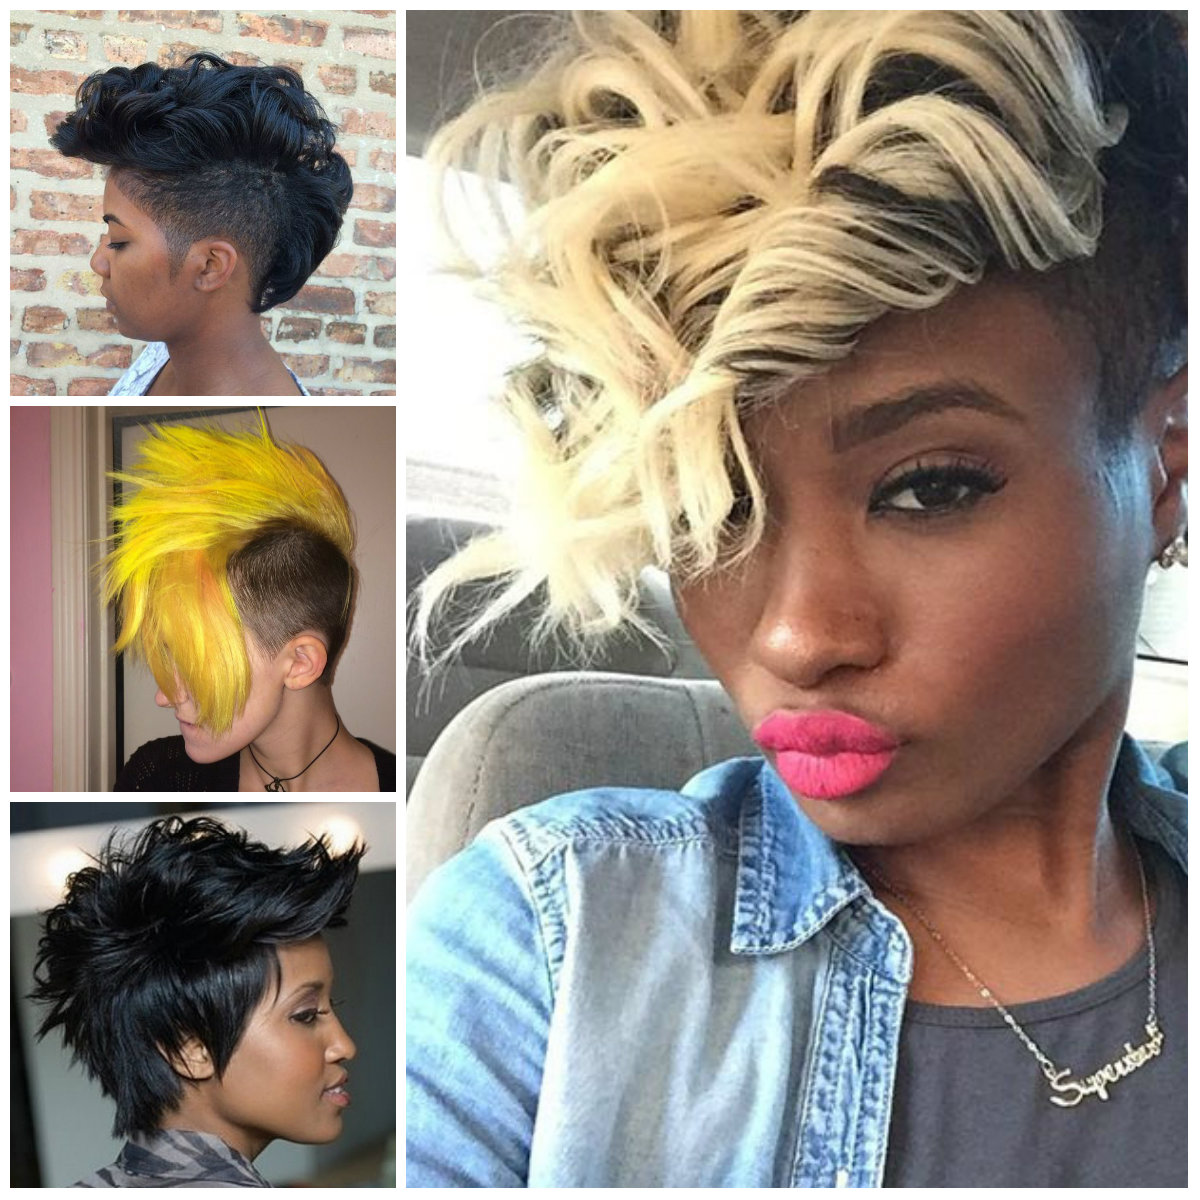 Women's Mohawks Hairstyles for 2022